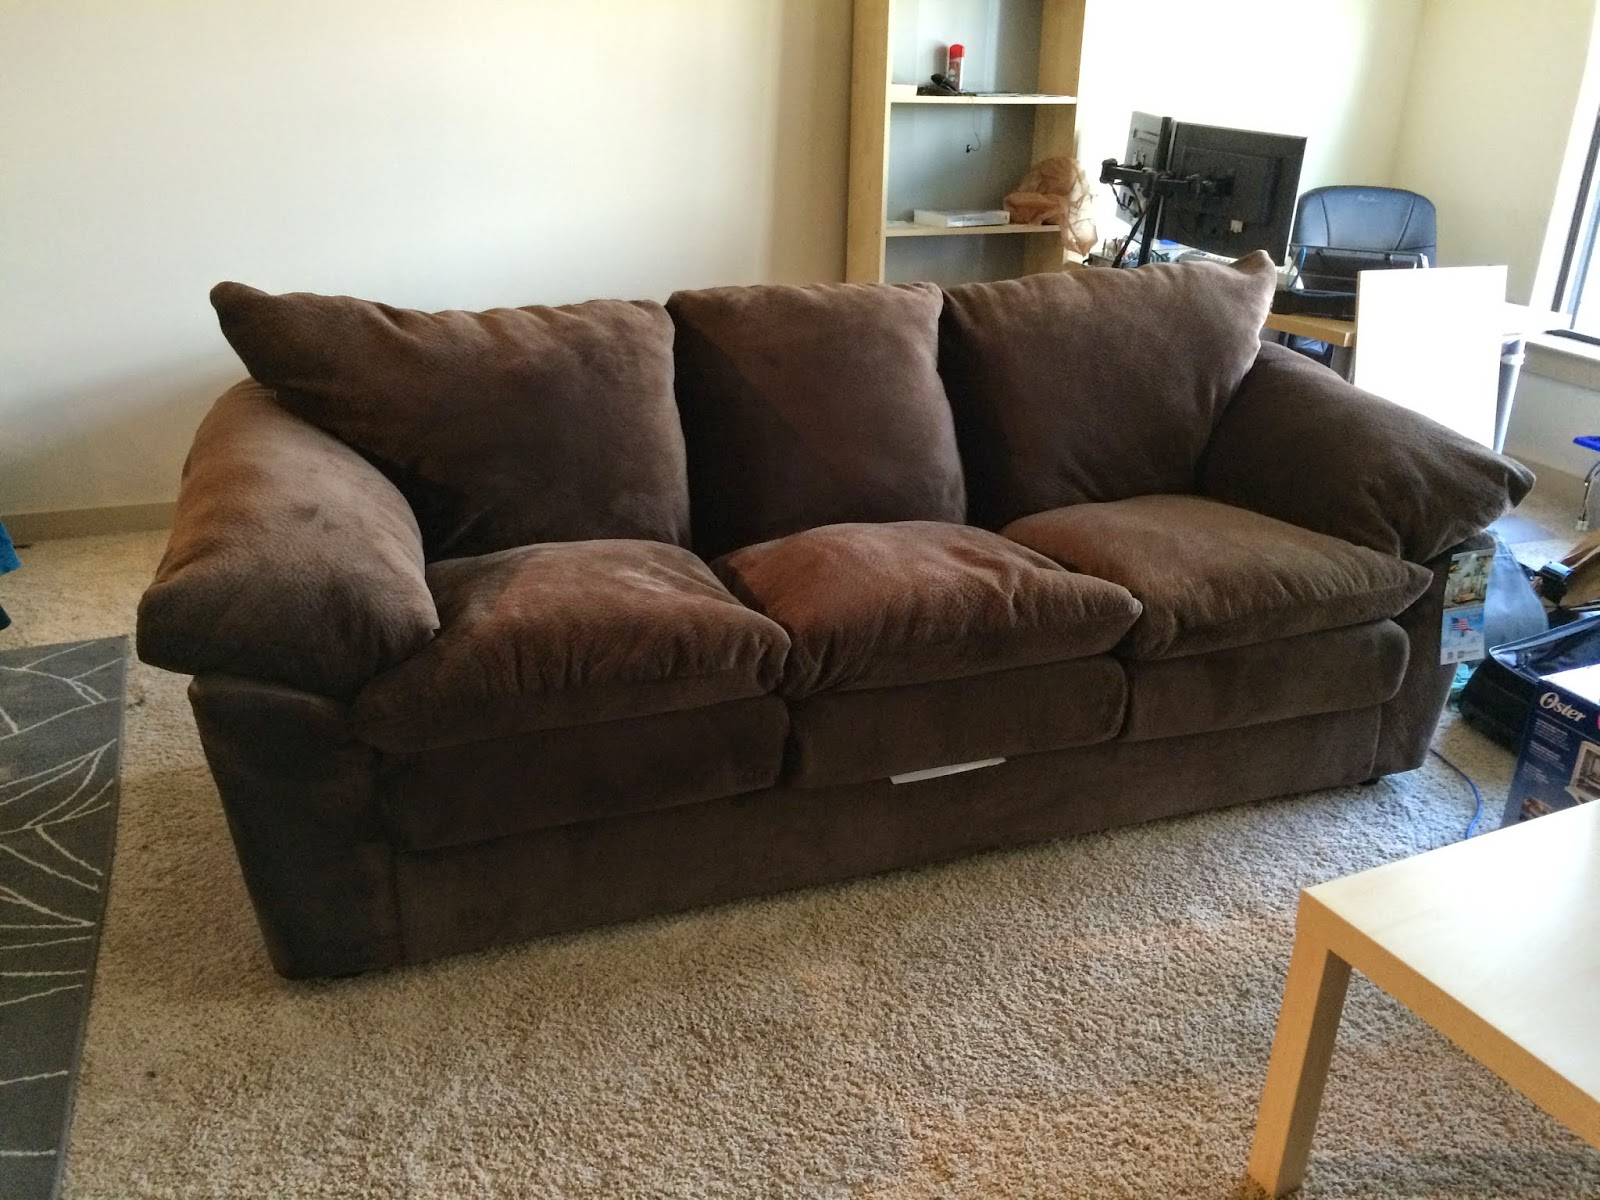 we couch antique furniture used have room sofas springfield living classic vintage couches mo